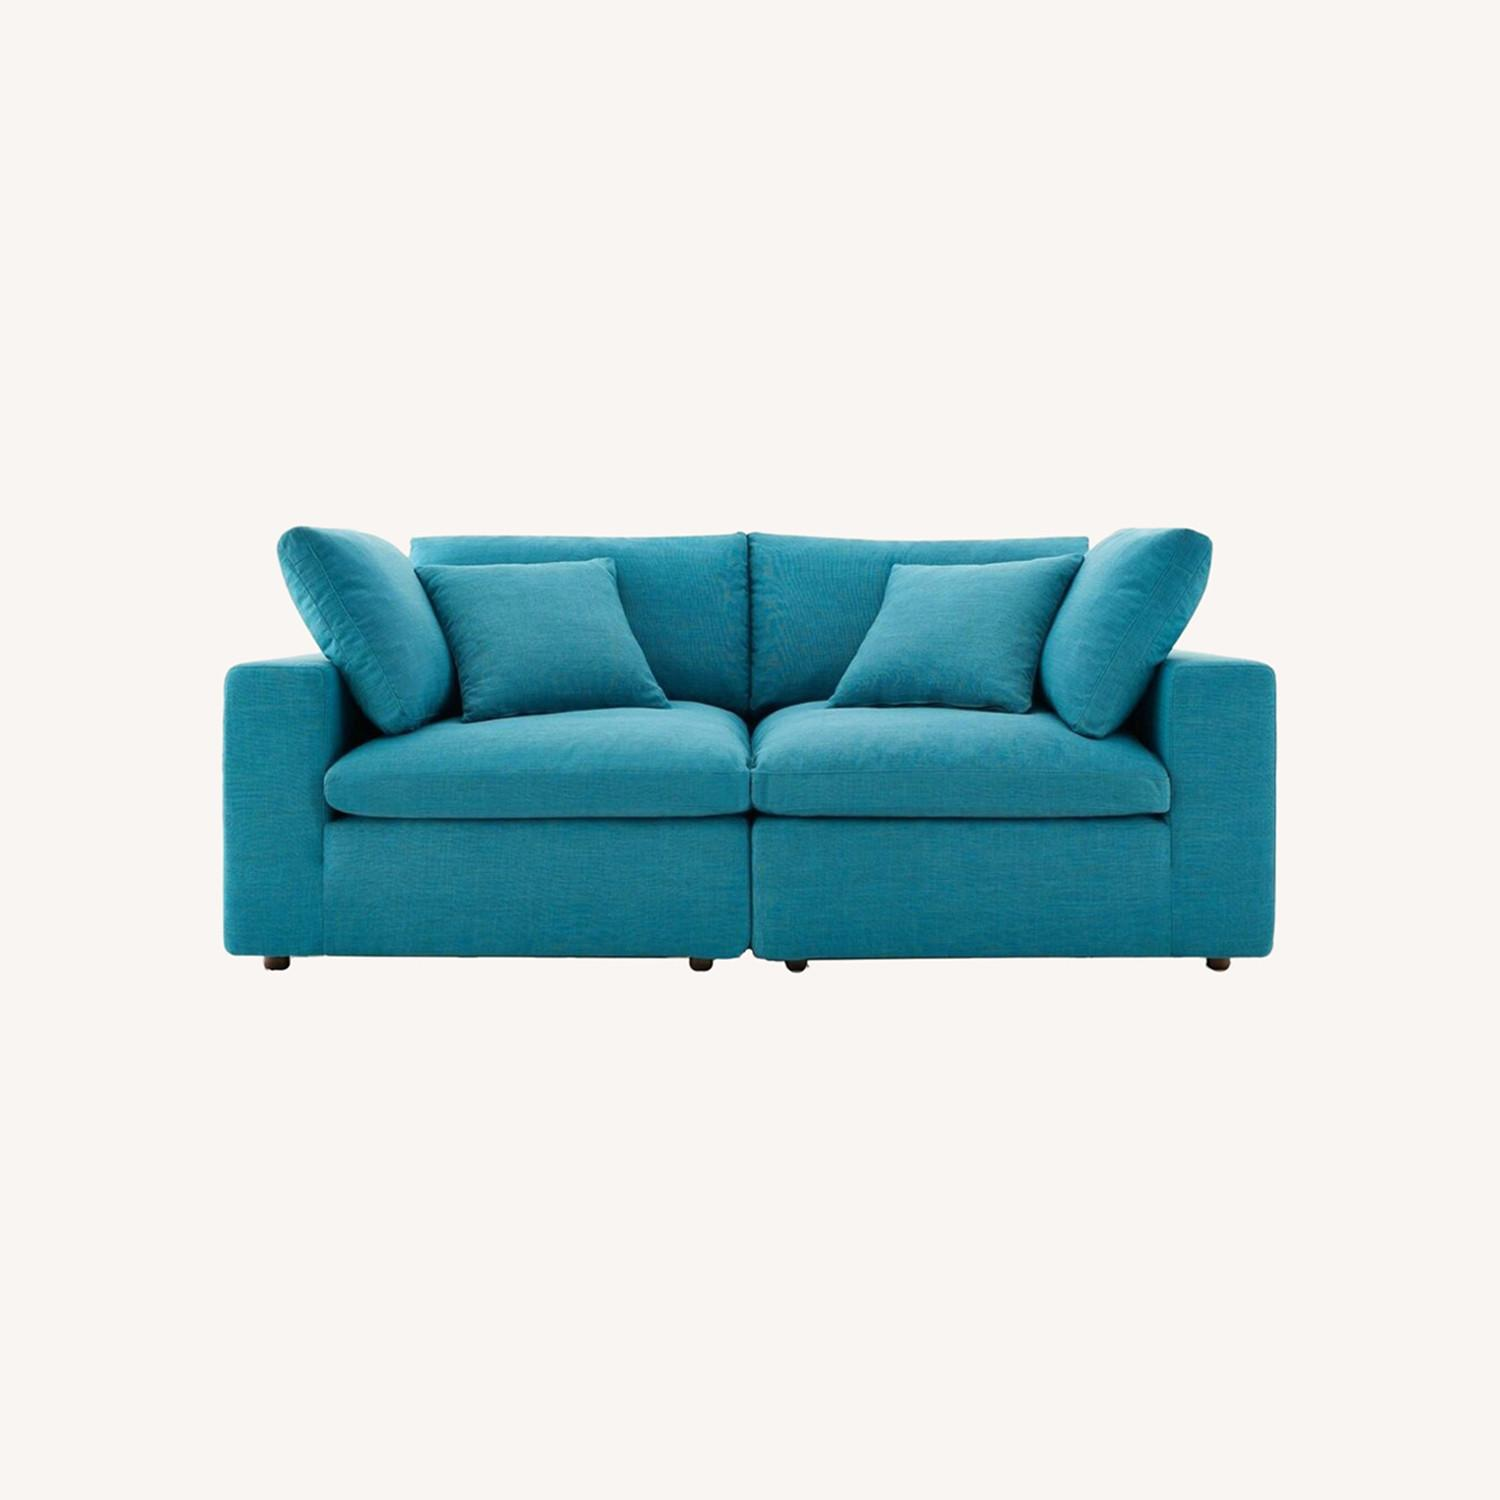 2-Piece Sectional Sofa In Teal Linen Fabric - image-6